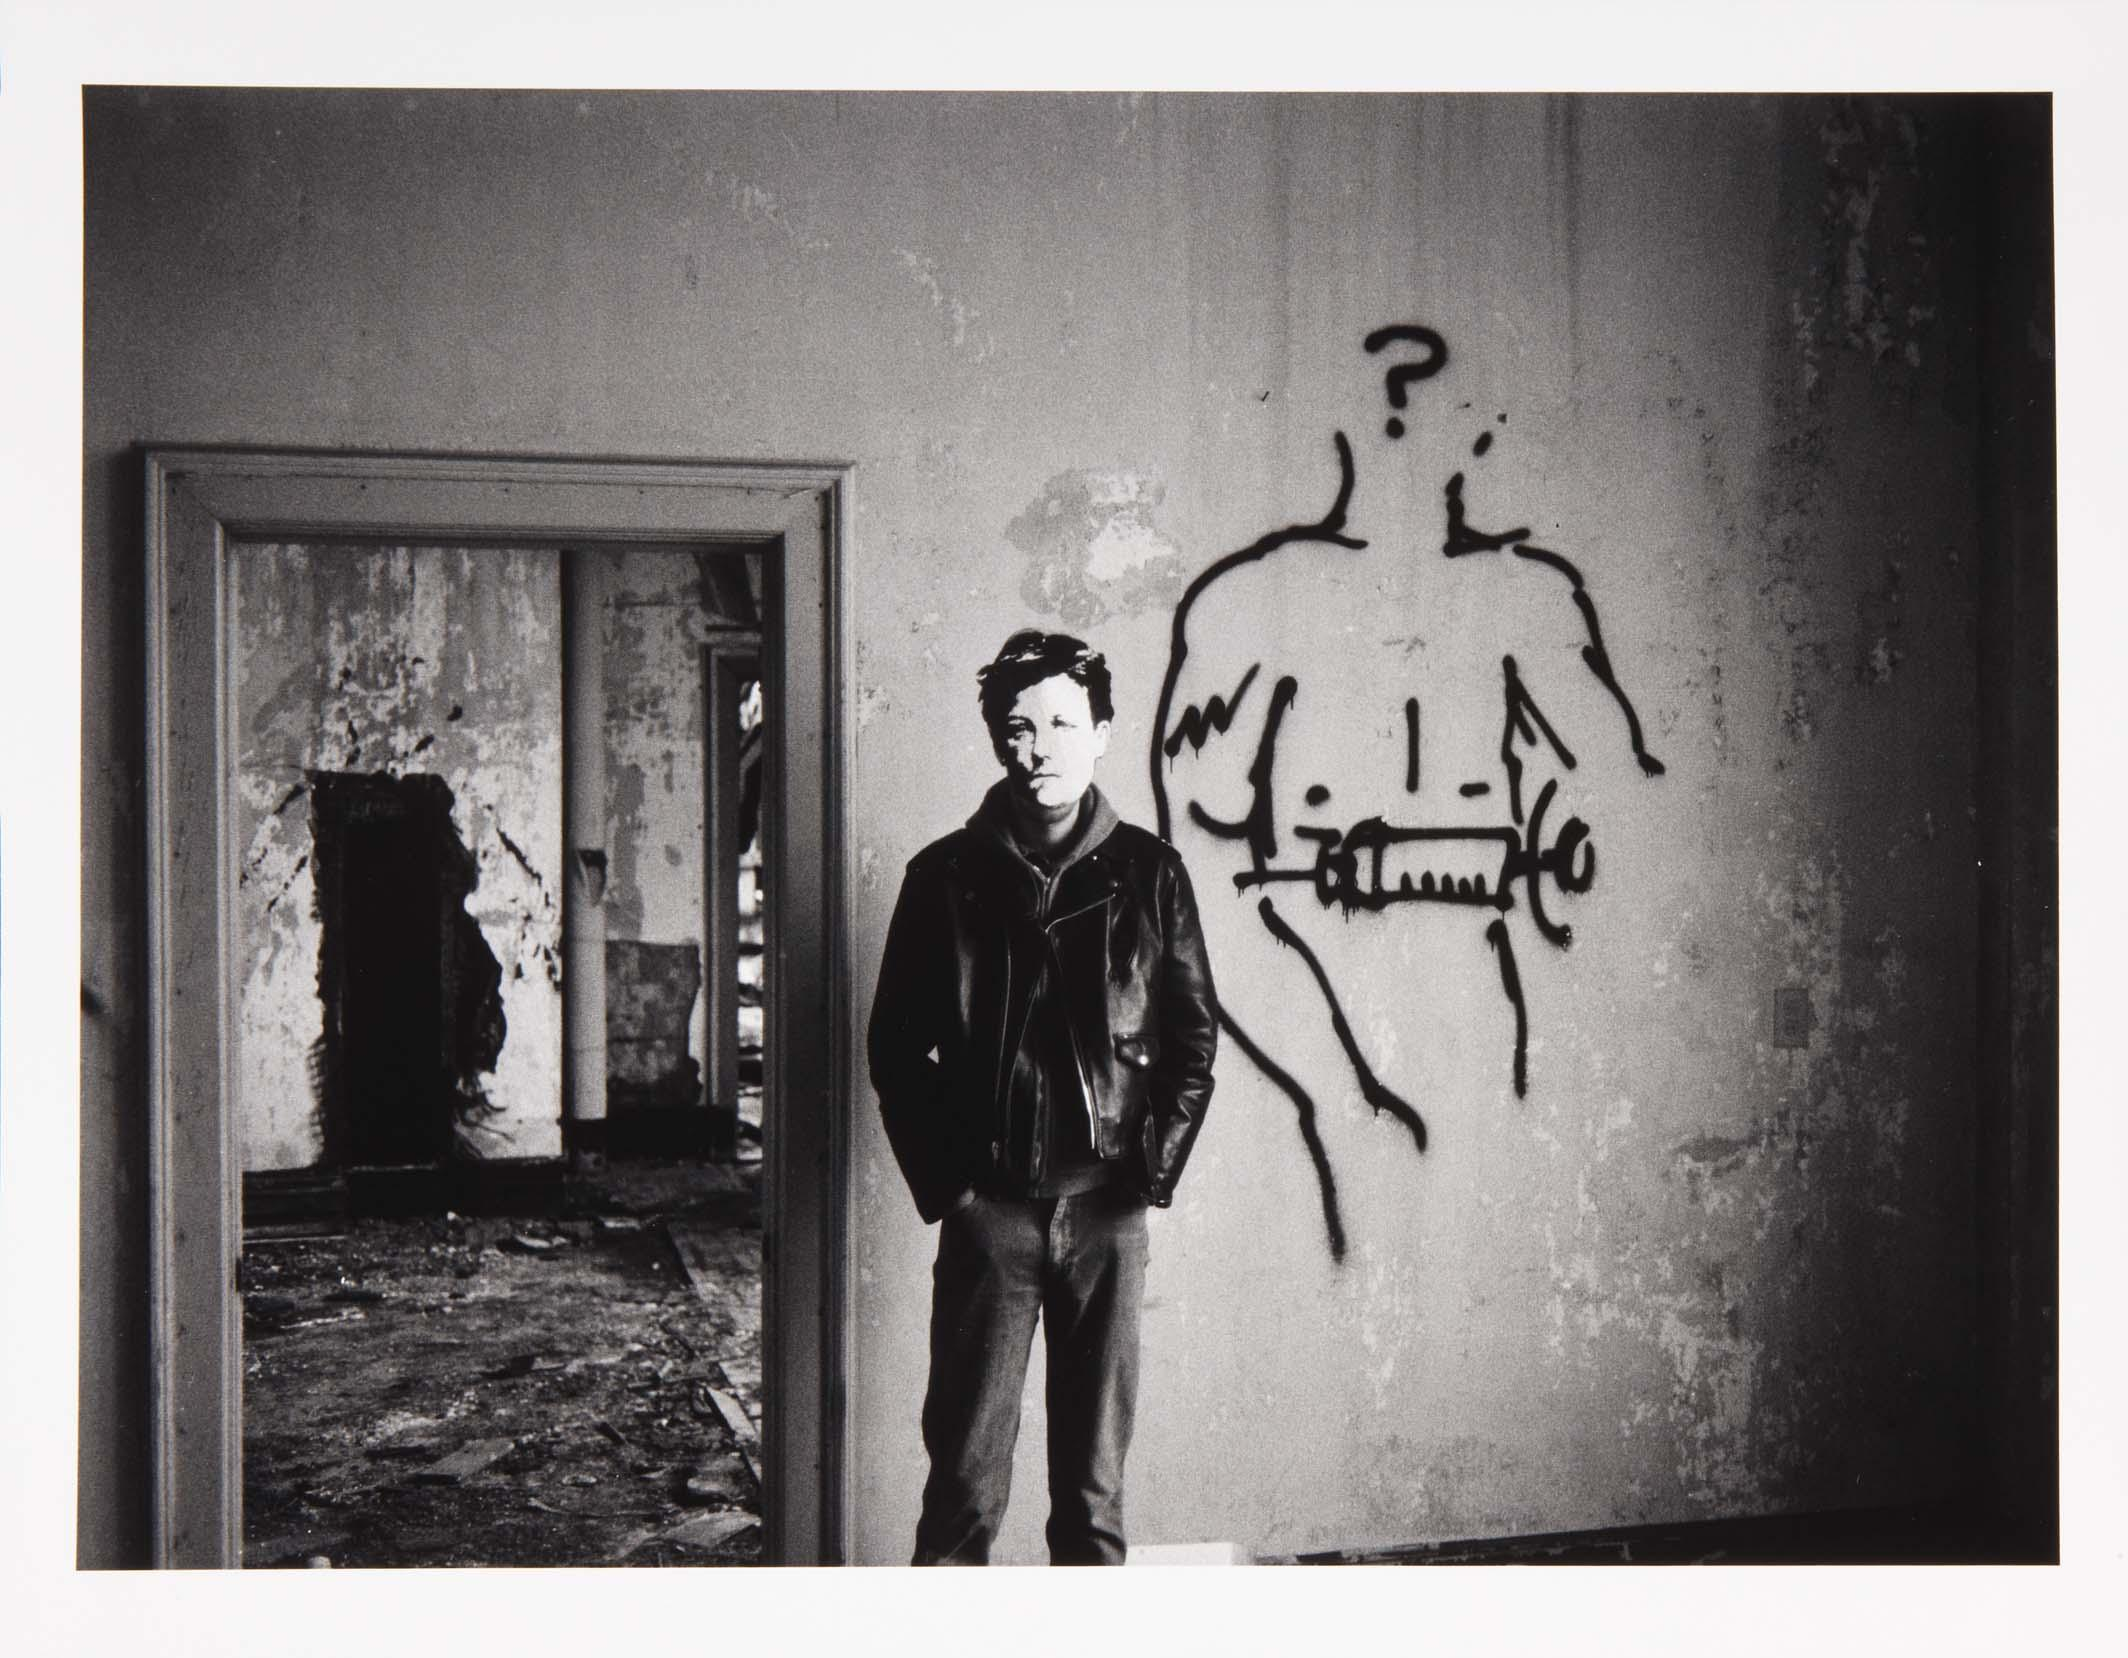 David Wojnarowicz, Arthur Rimbaud in New York (1978-1979). Courtesy of PPOW Gallery, NY and the Estate of David Wojnarowicz